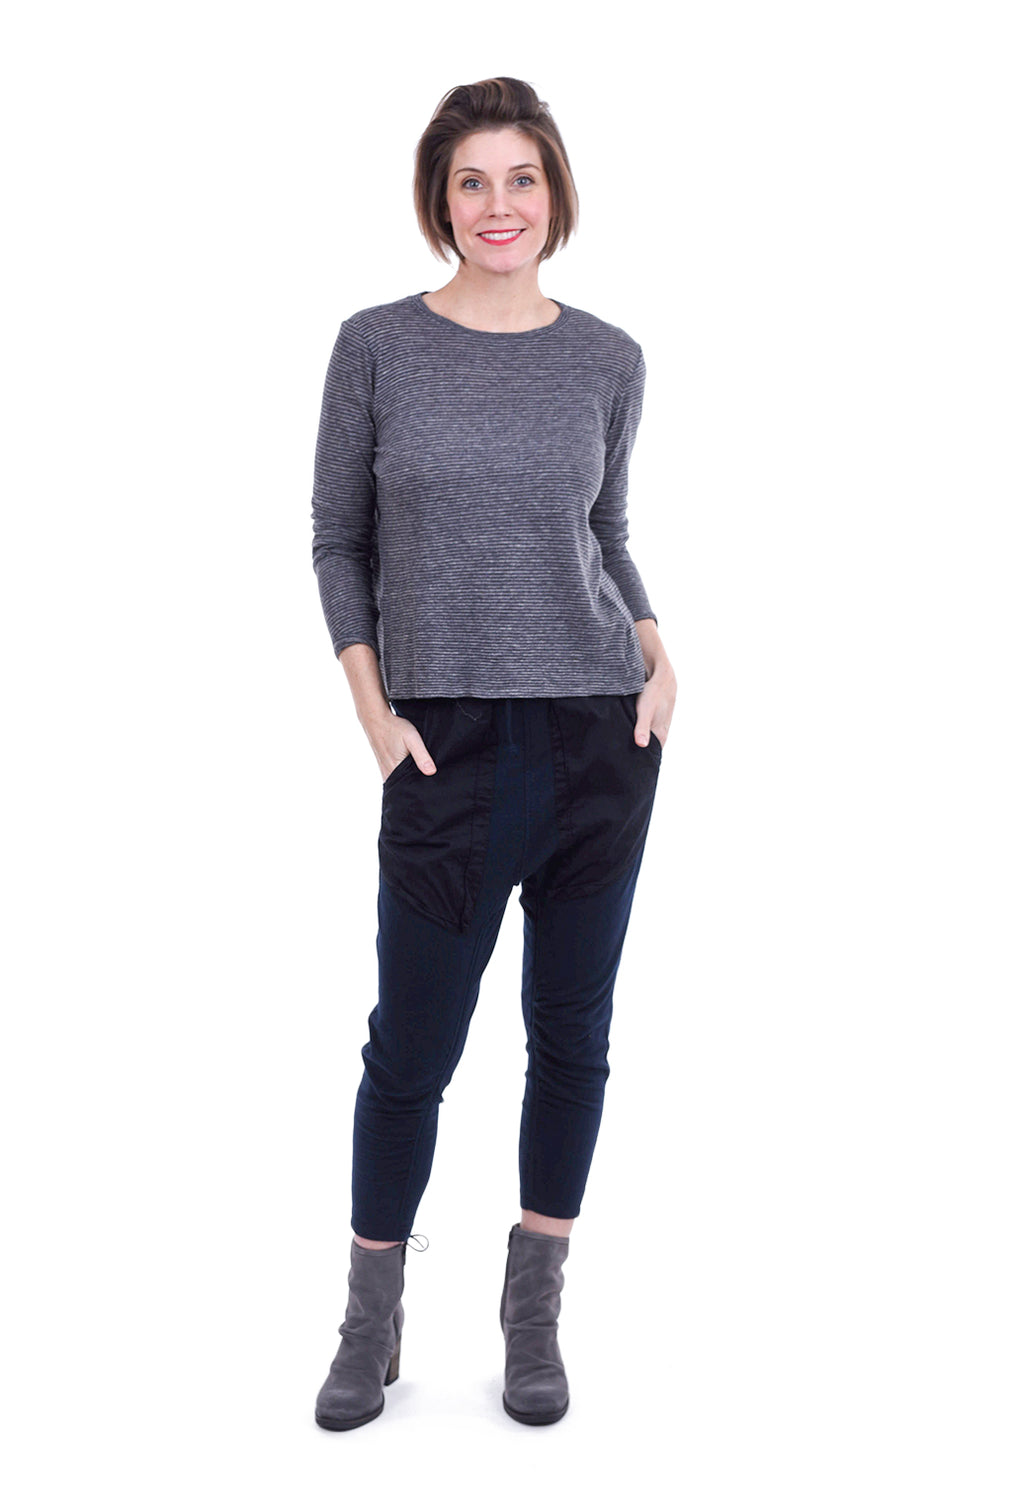 Enza Costa Slightly Cropped L/S Tee, Charcoal Gray